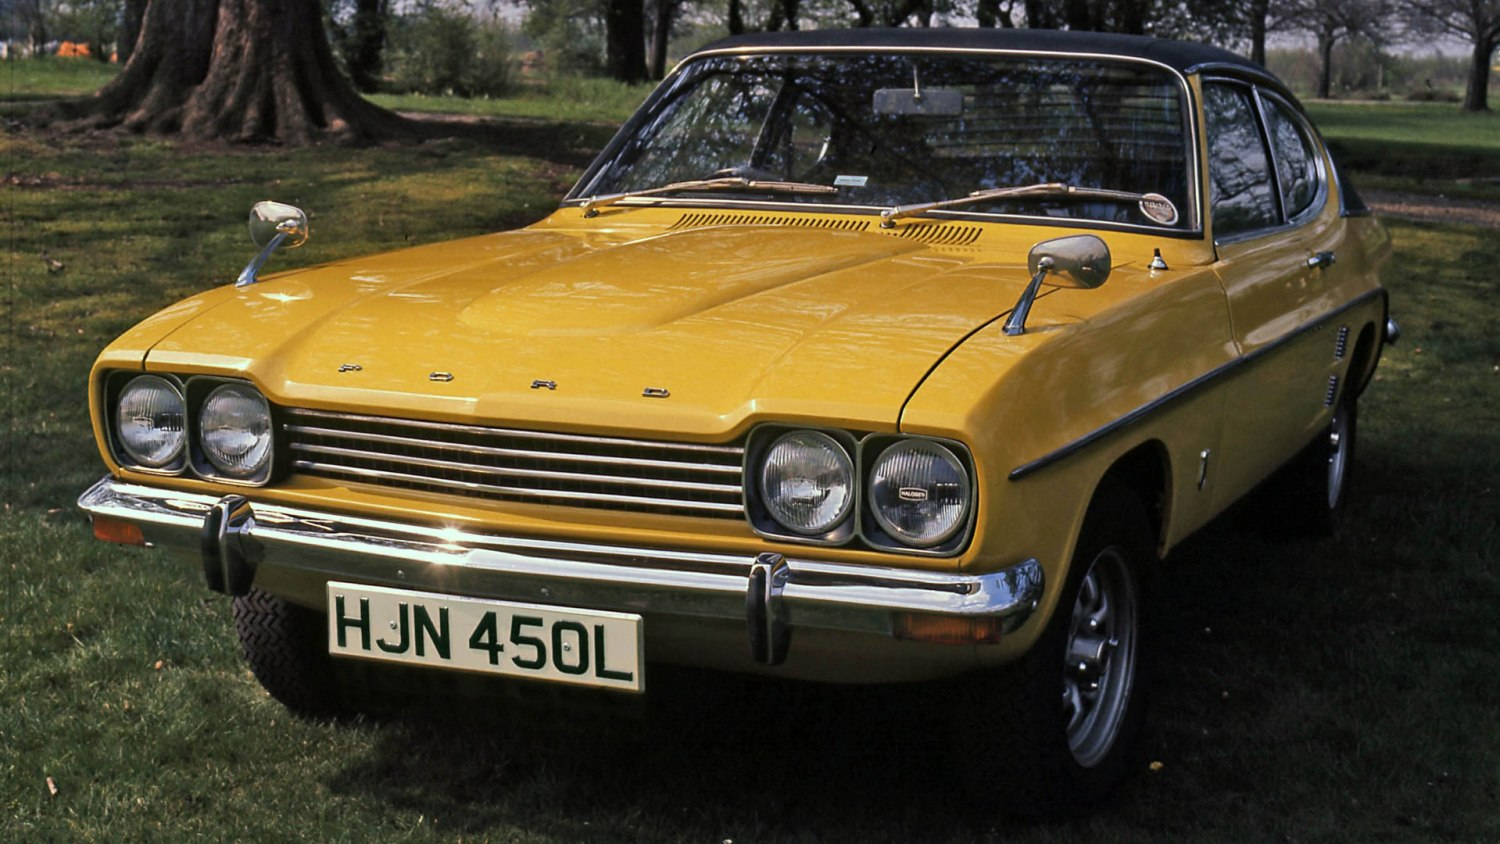 The Ford Capri